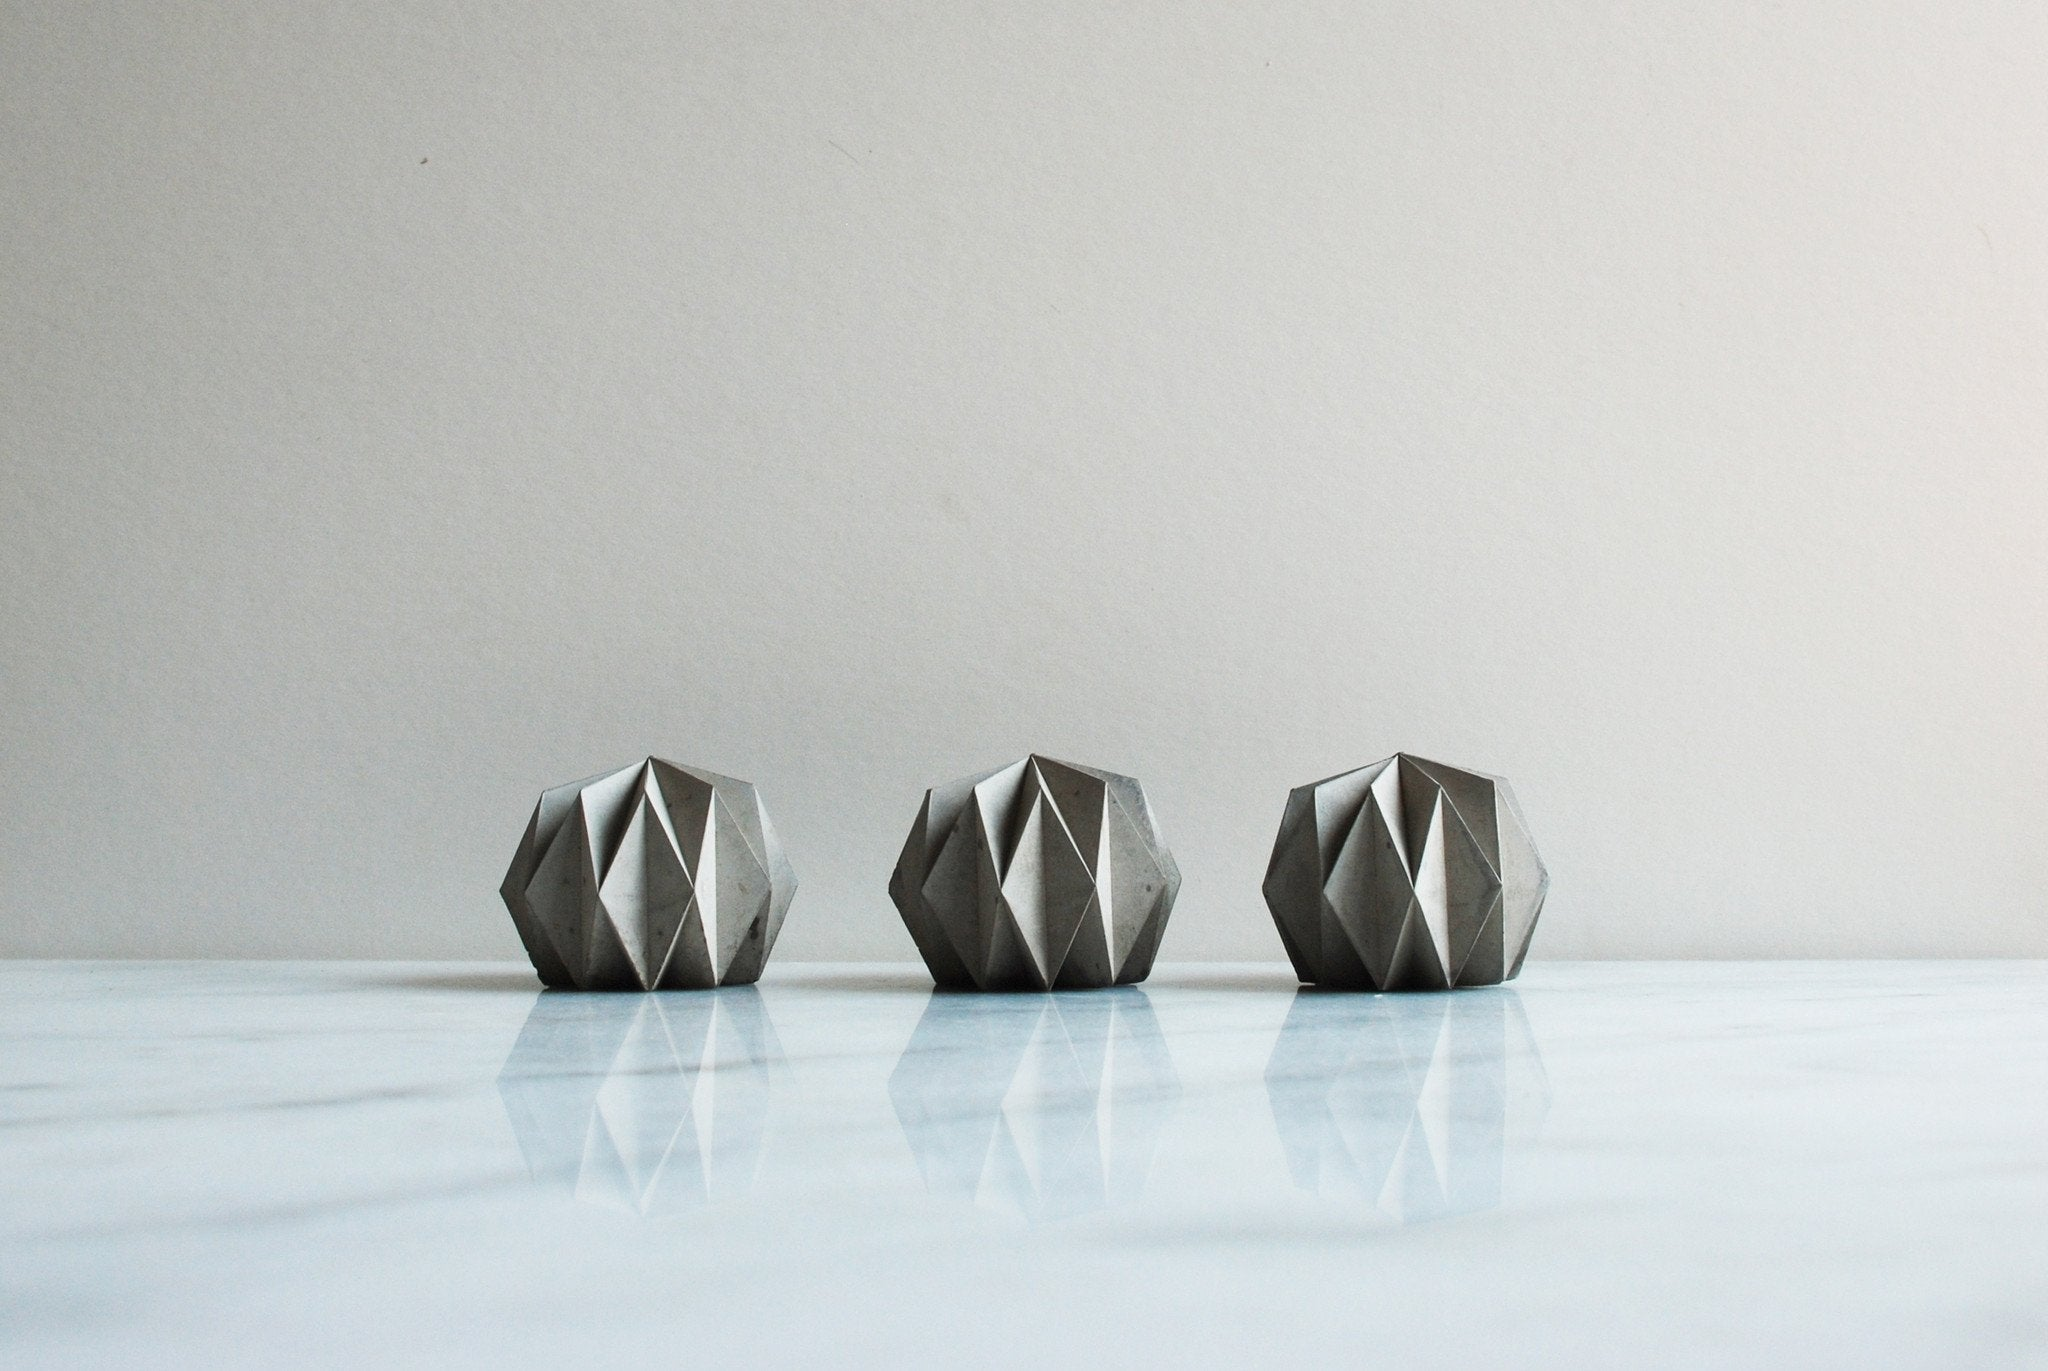 Three small origami shaped paperweights